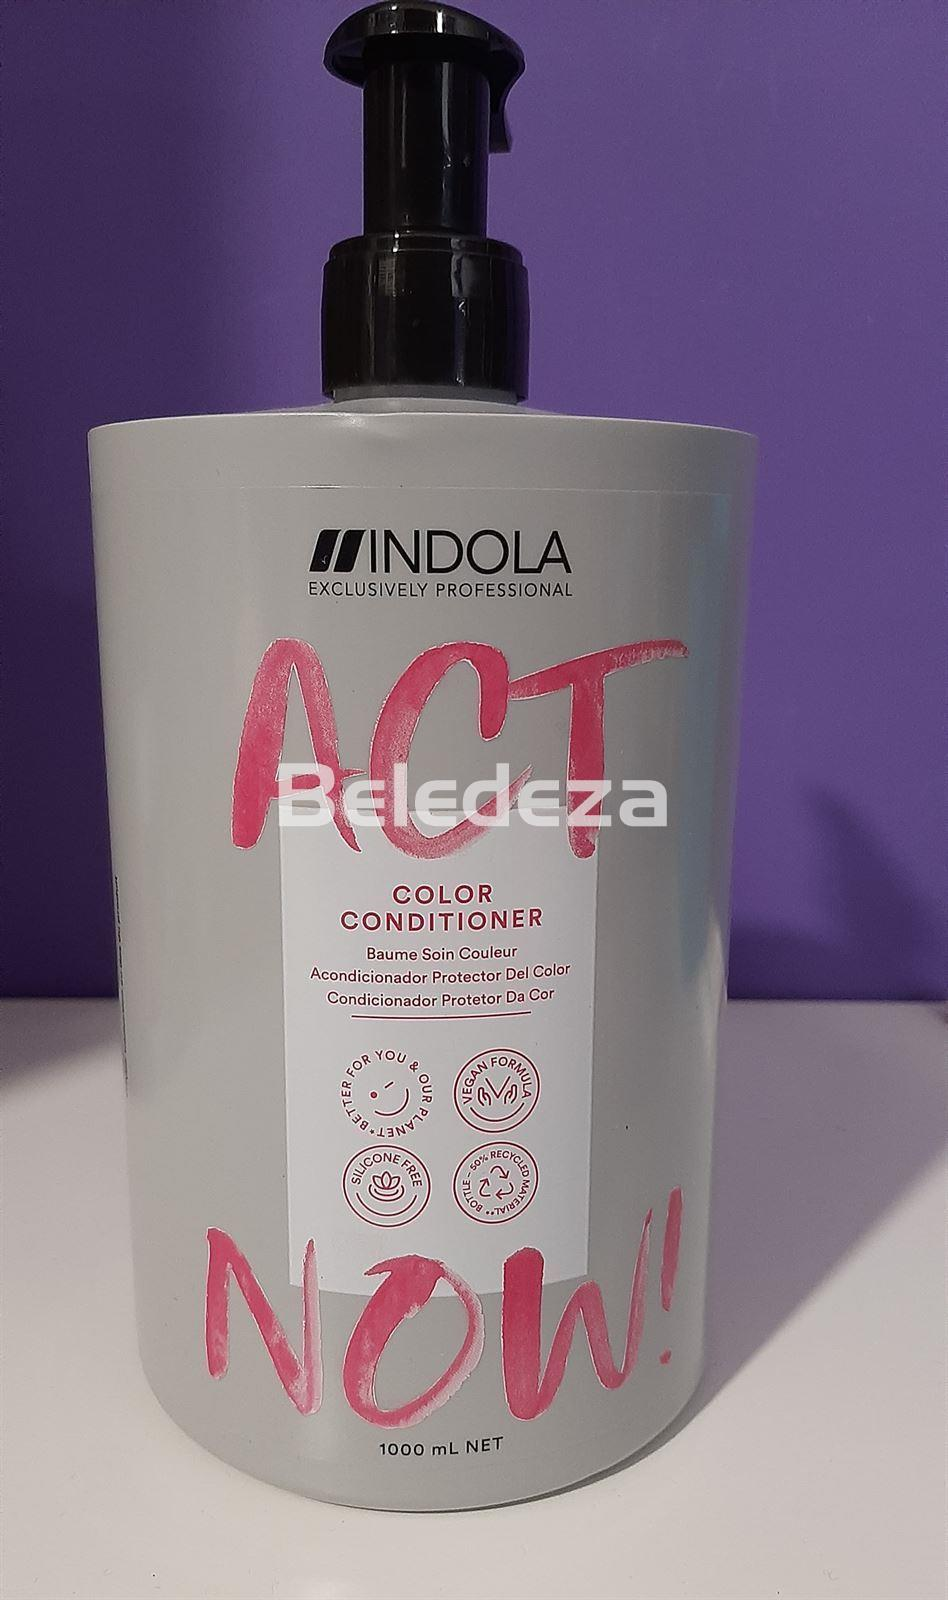 ACT NOW COLOR CONDITIONER Acondicionador Protector Color VEGAN FORMULA - Imagen 2